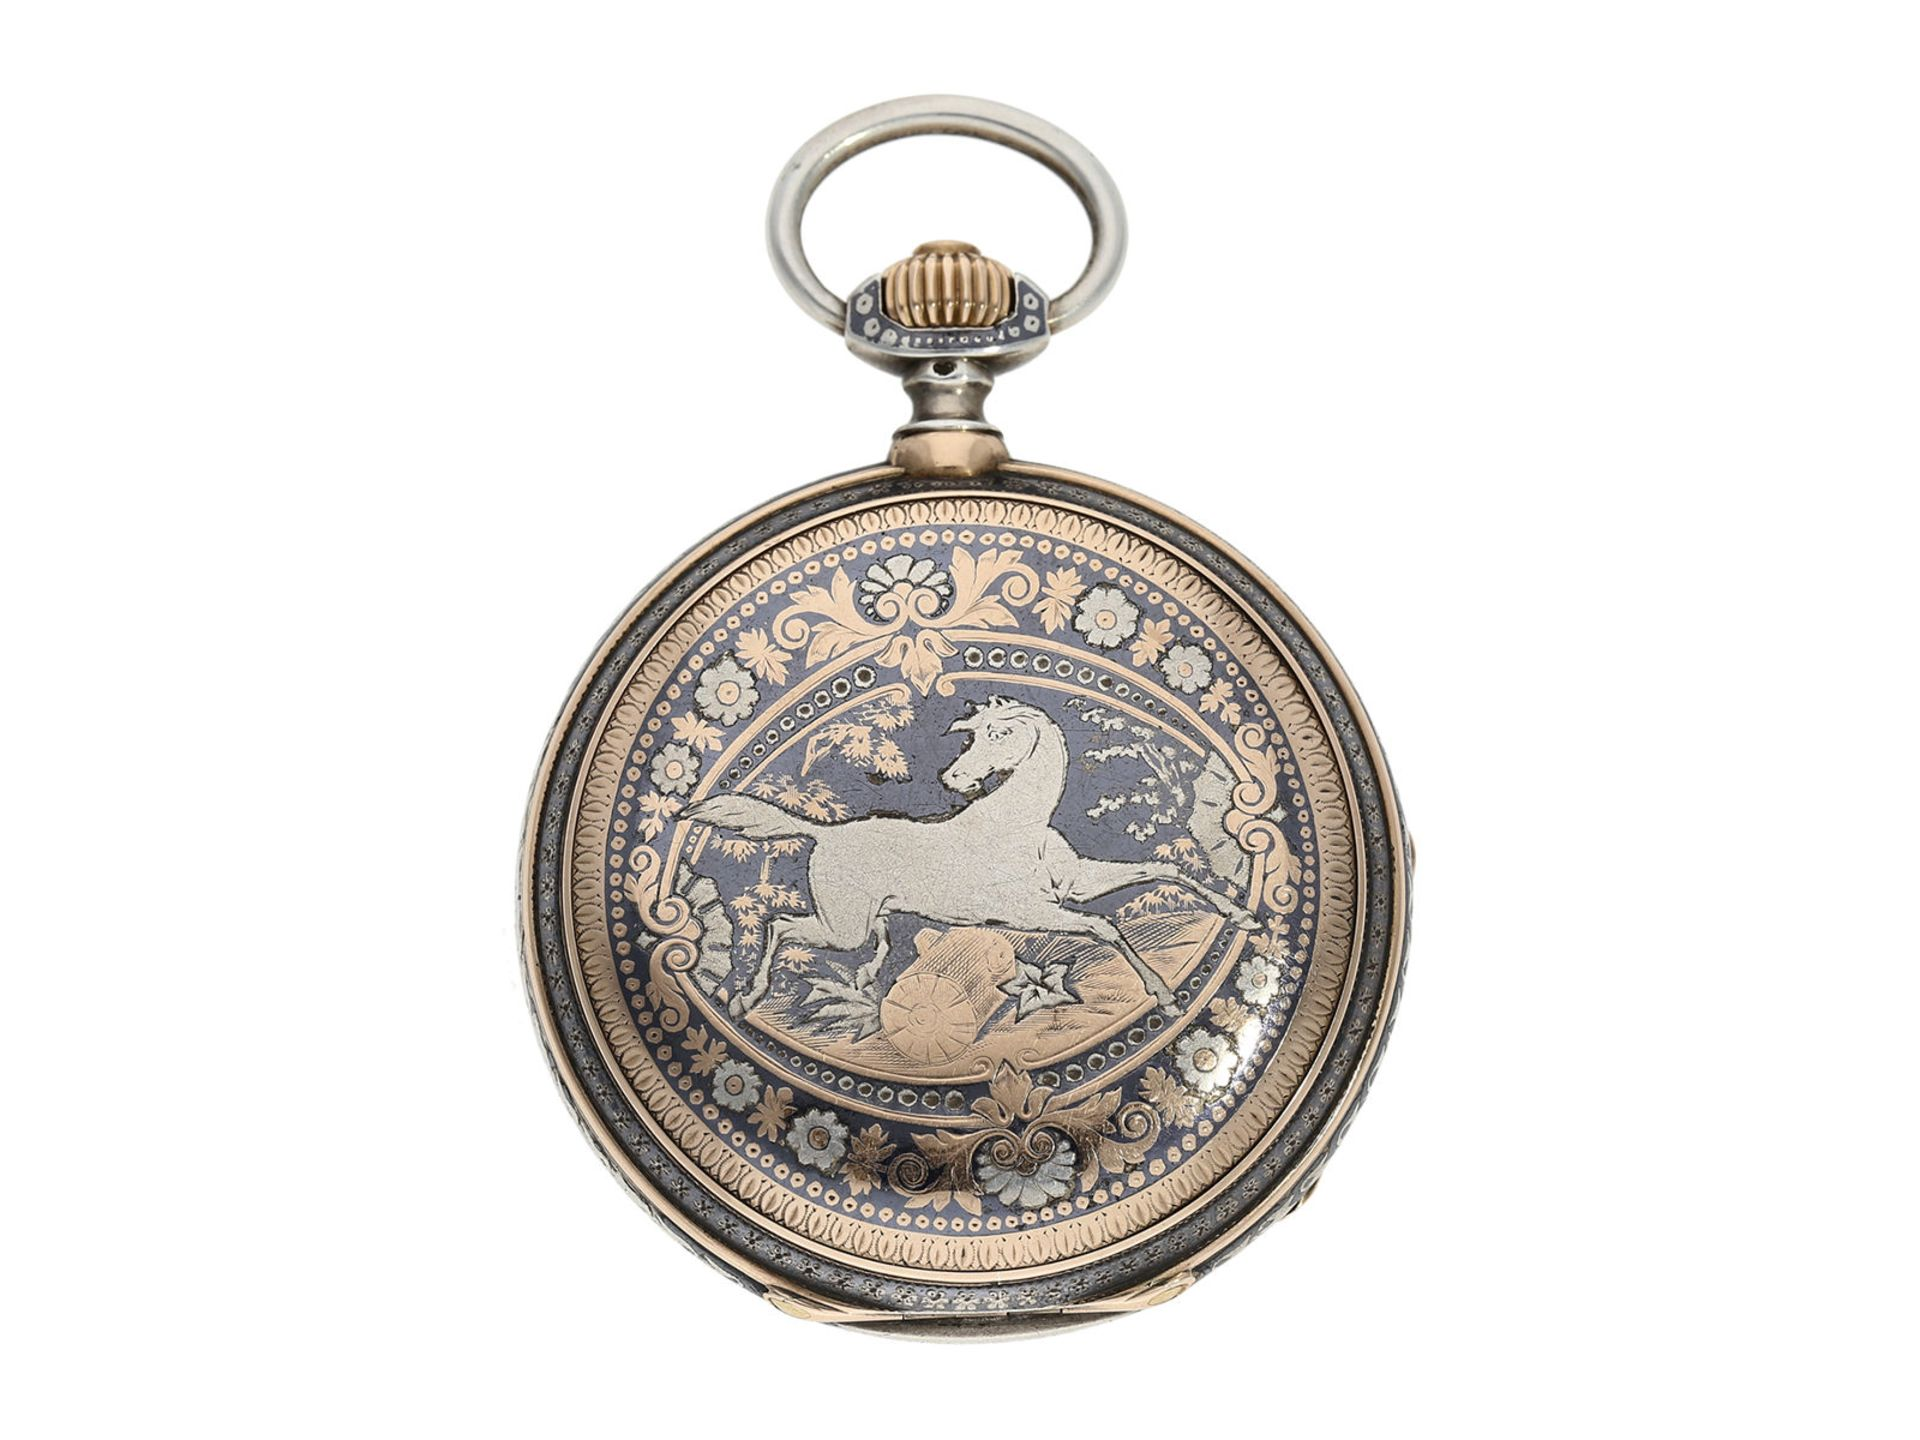 Pocket watch: extremely splendid Tula hunting case watch pink gold/ silver, high quality - Bild 6 aus 7